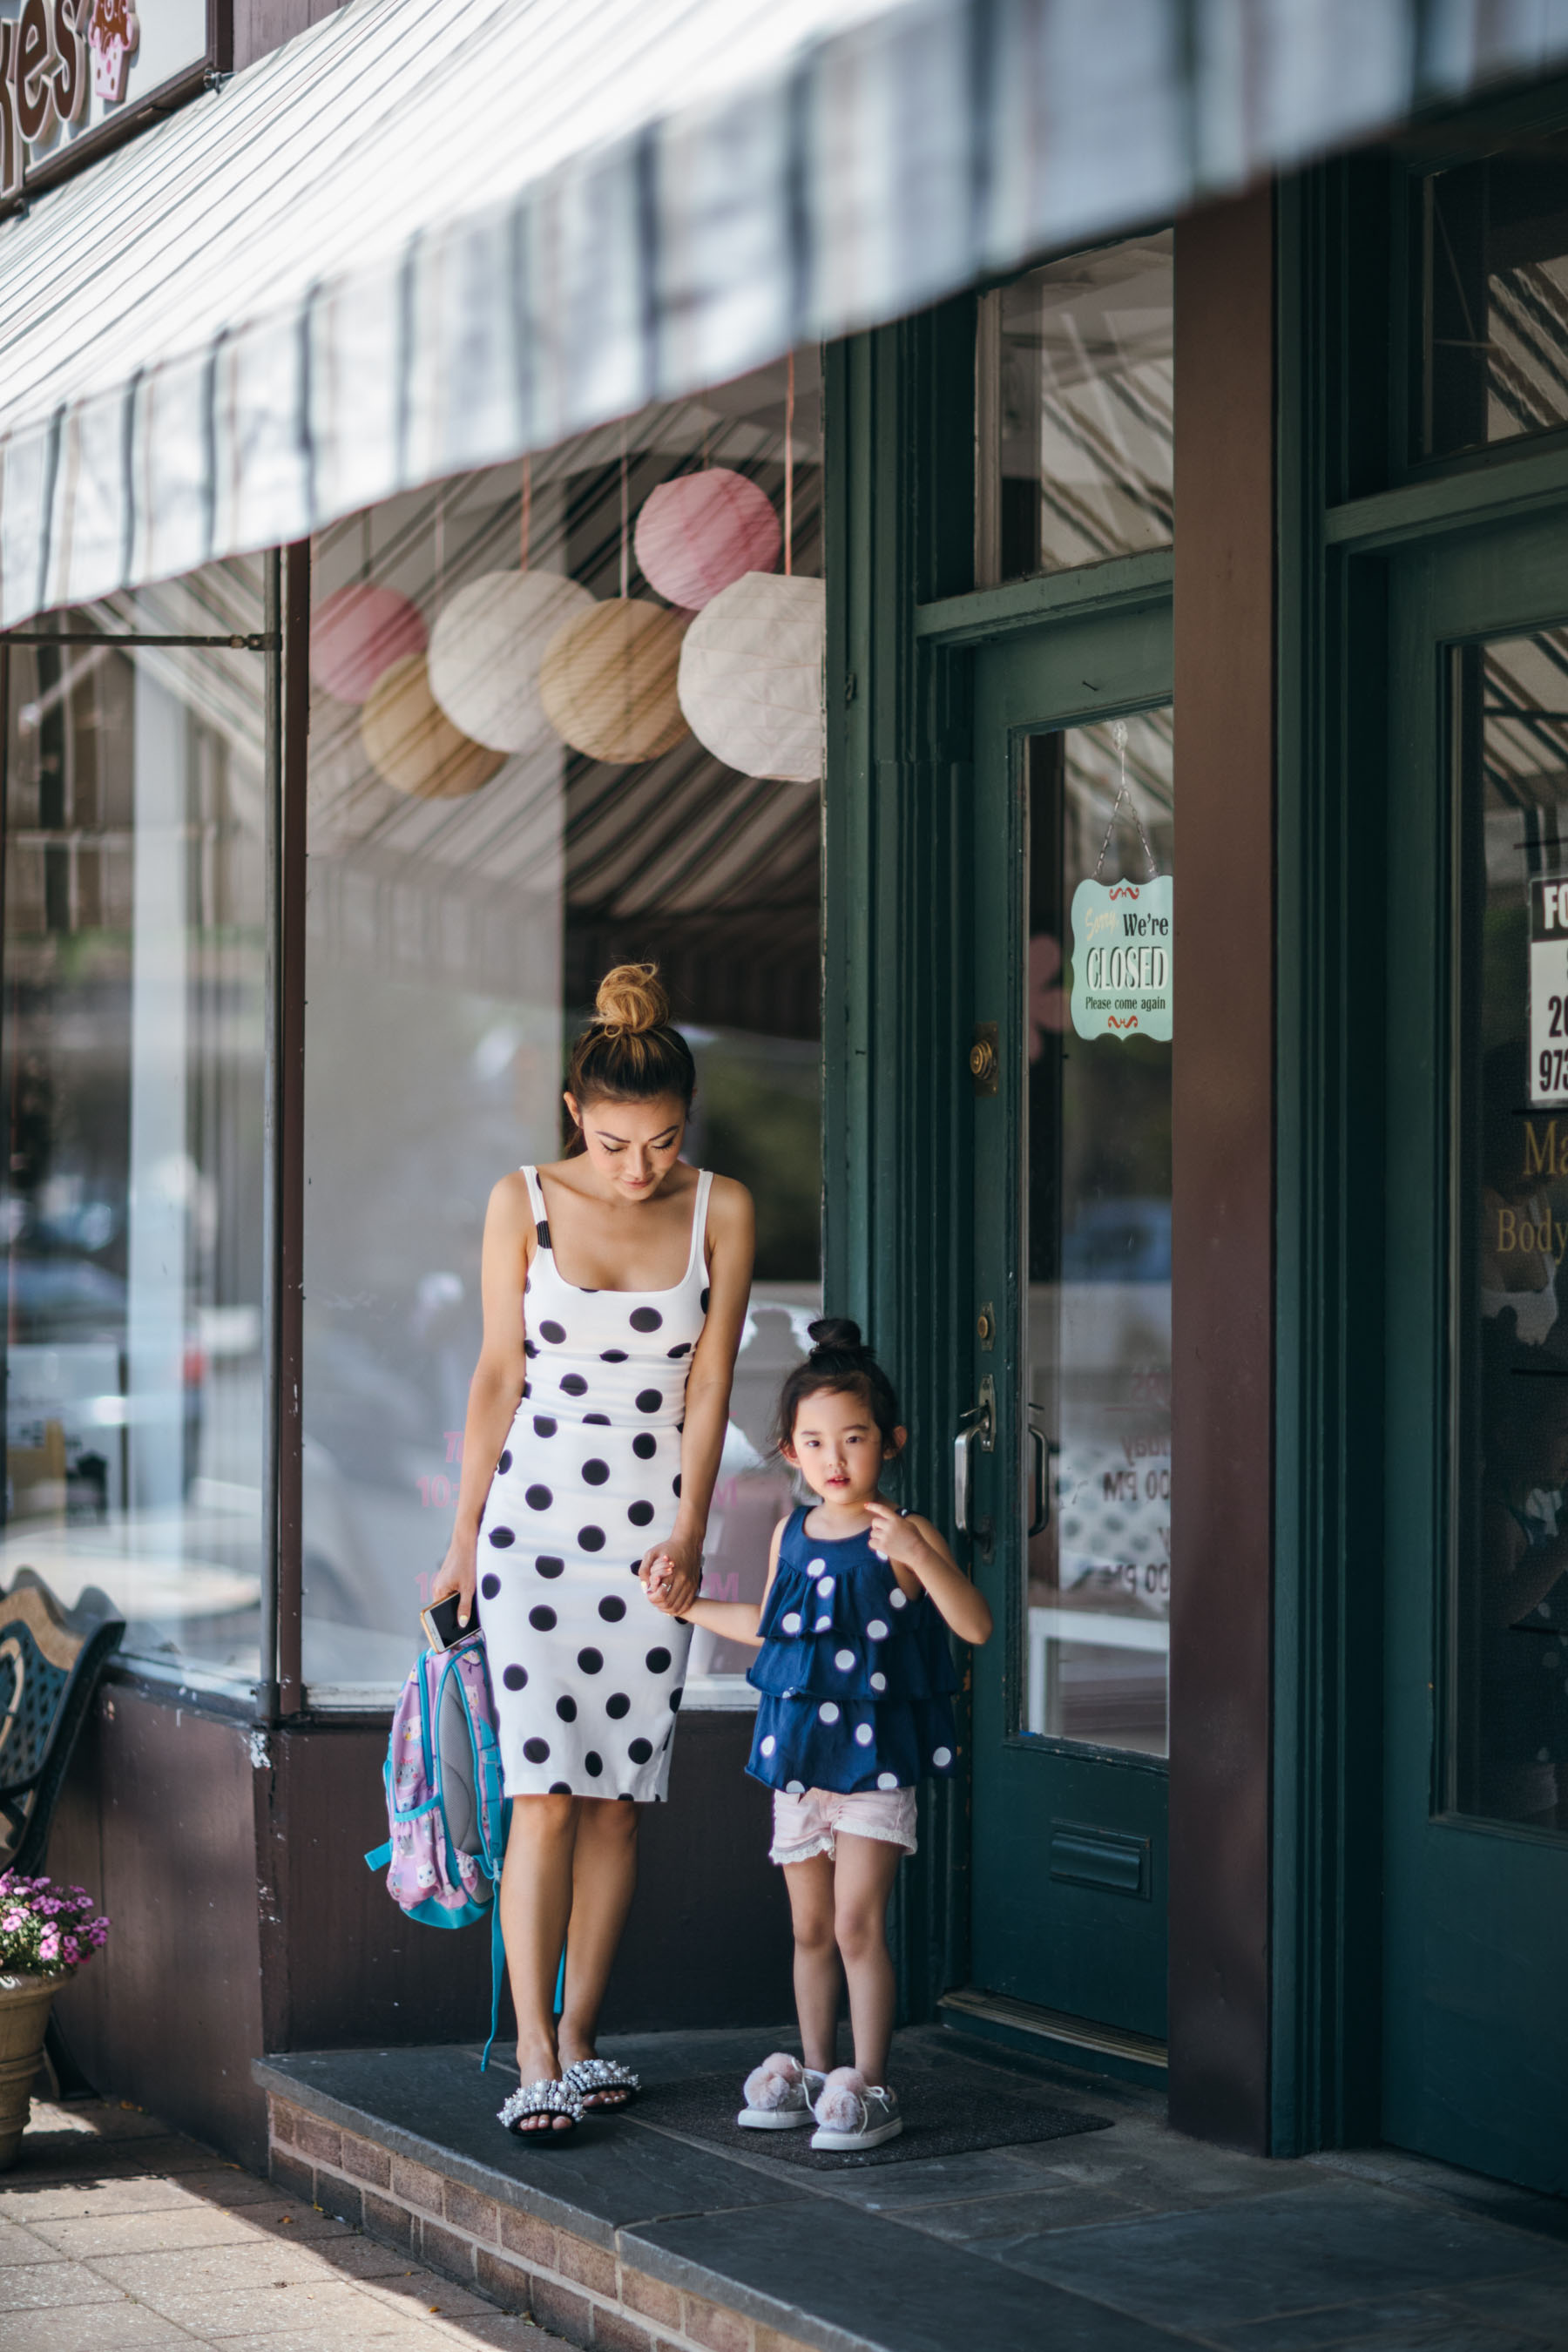 white Polka-dots dress - Summer Trend Spotting: Polka-dots // NotJessFashion.com